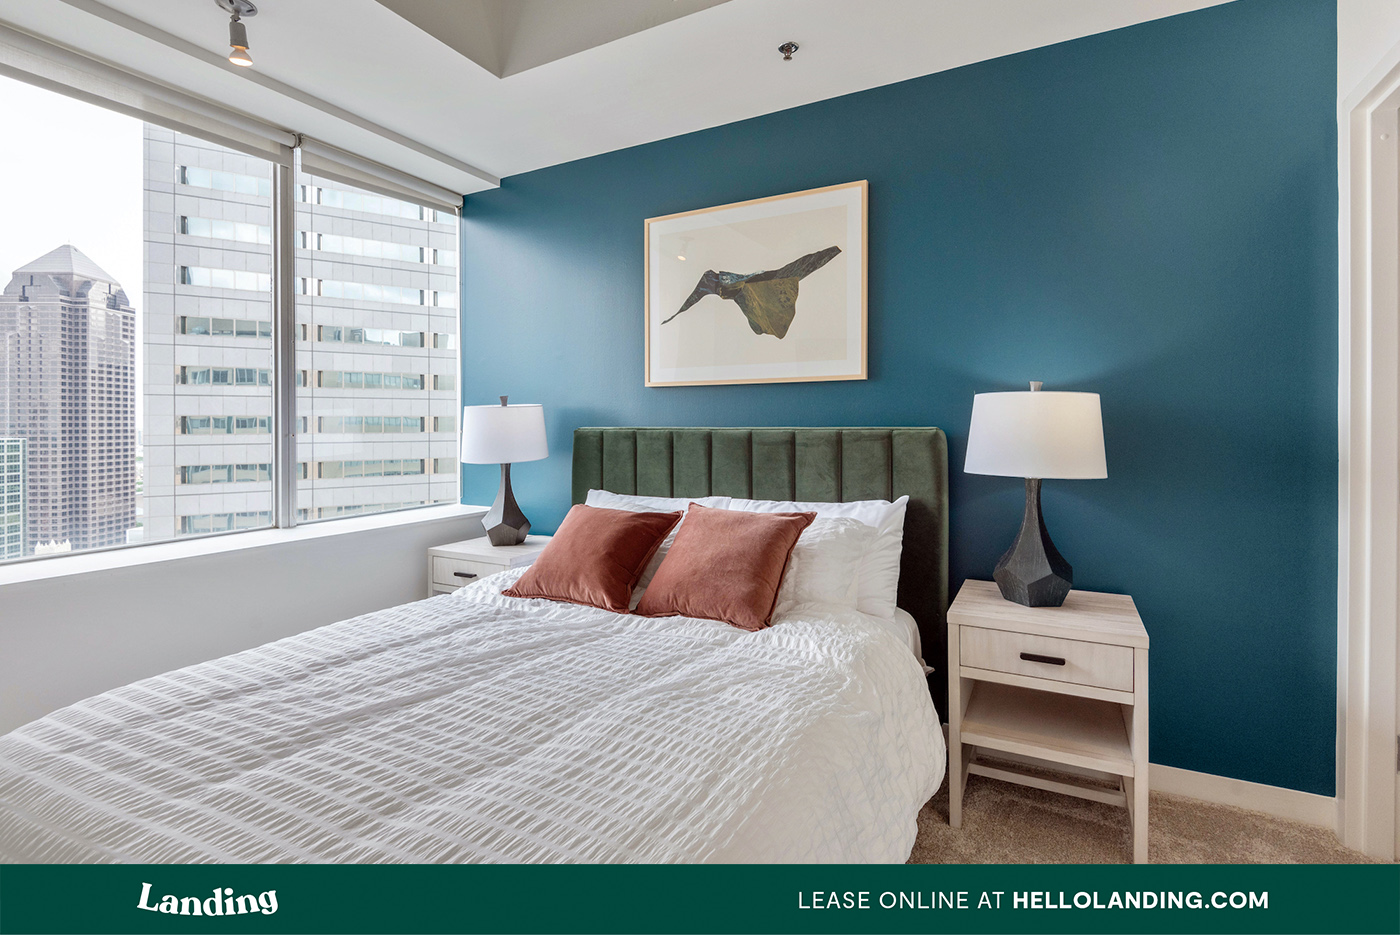 Mosaic Apartments for rent